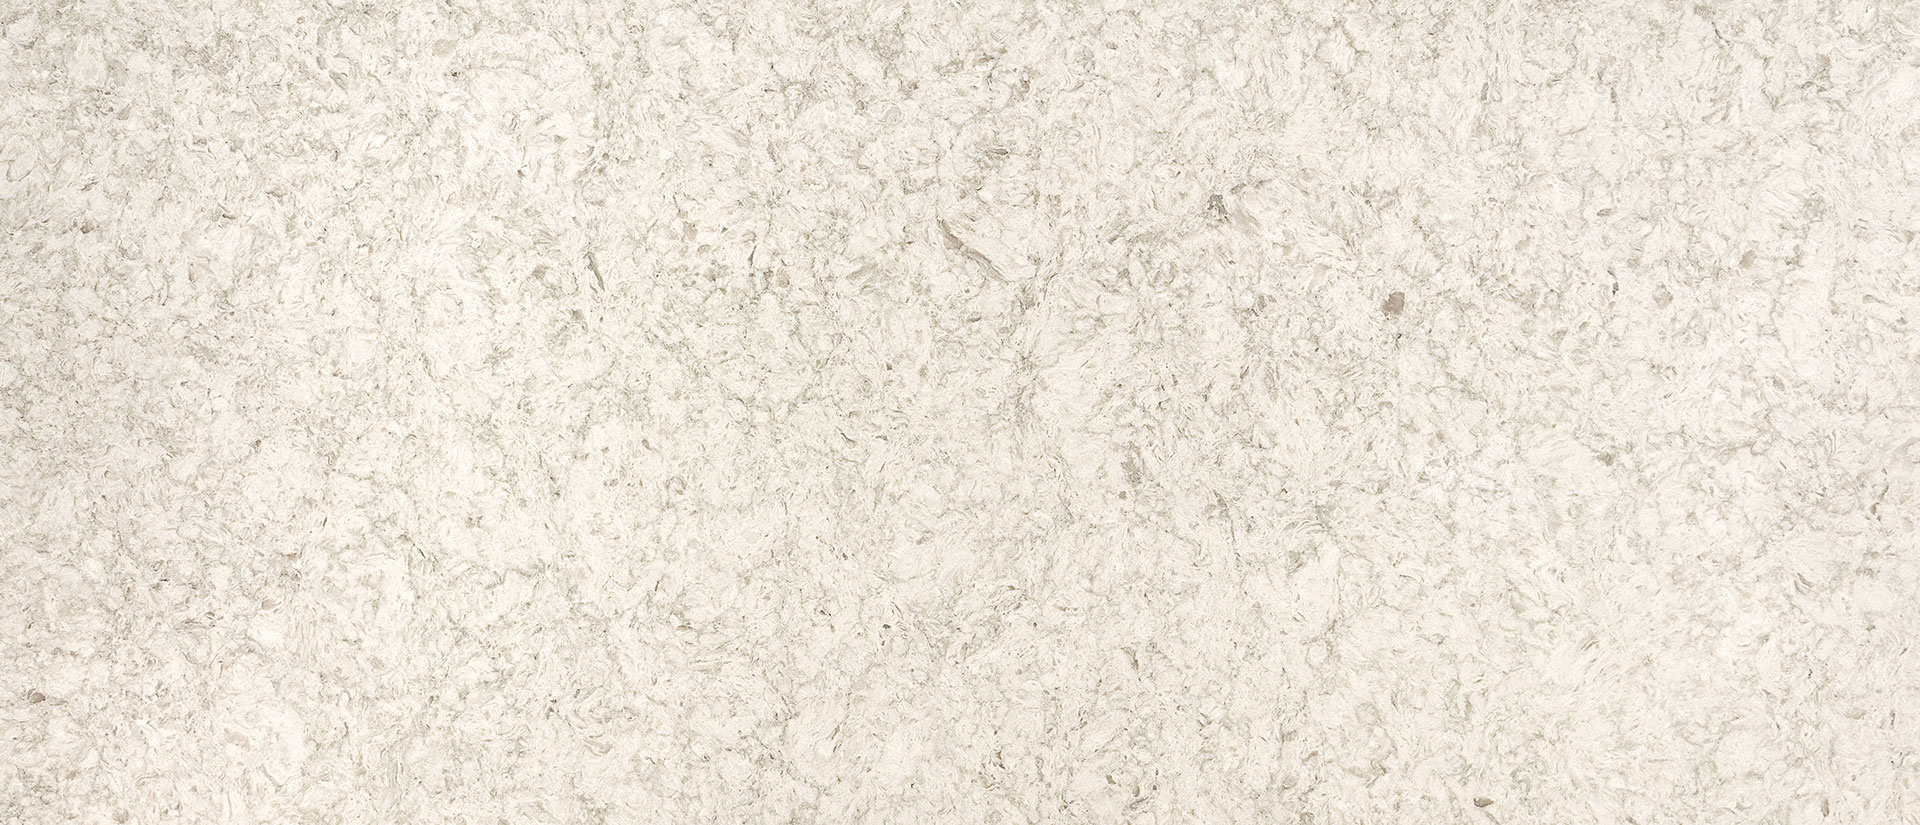 Taupe Quartz Countertop Portico Cream Quartz Countertops Q Premium Natural Quartz